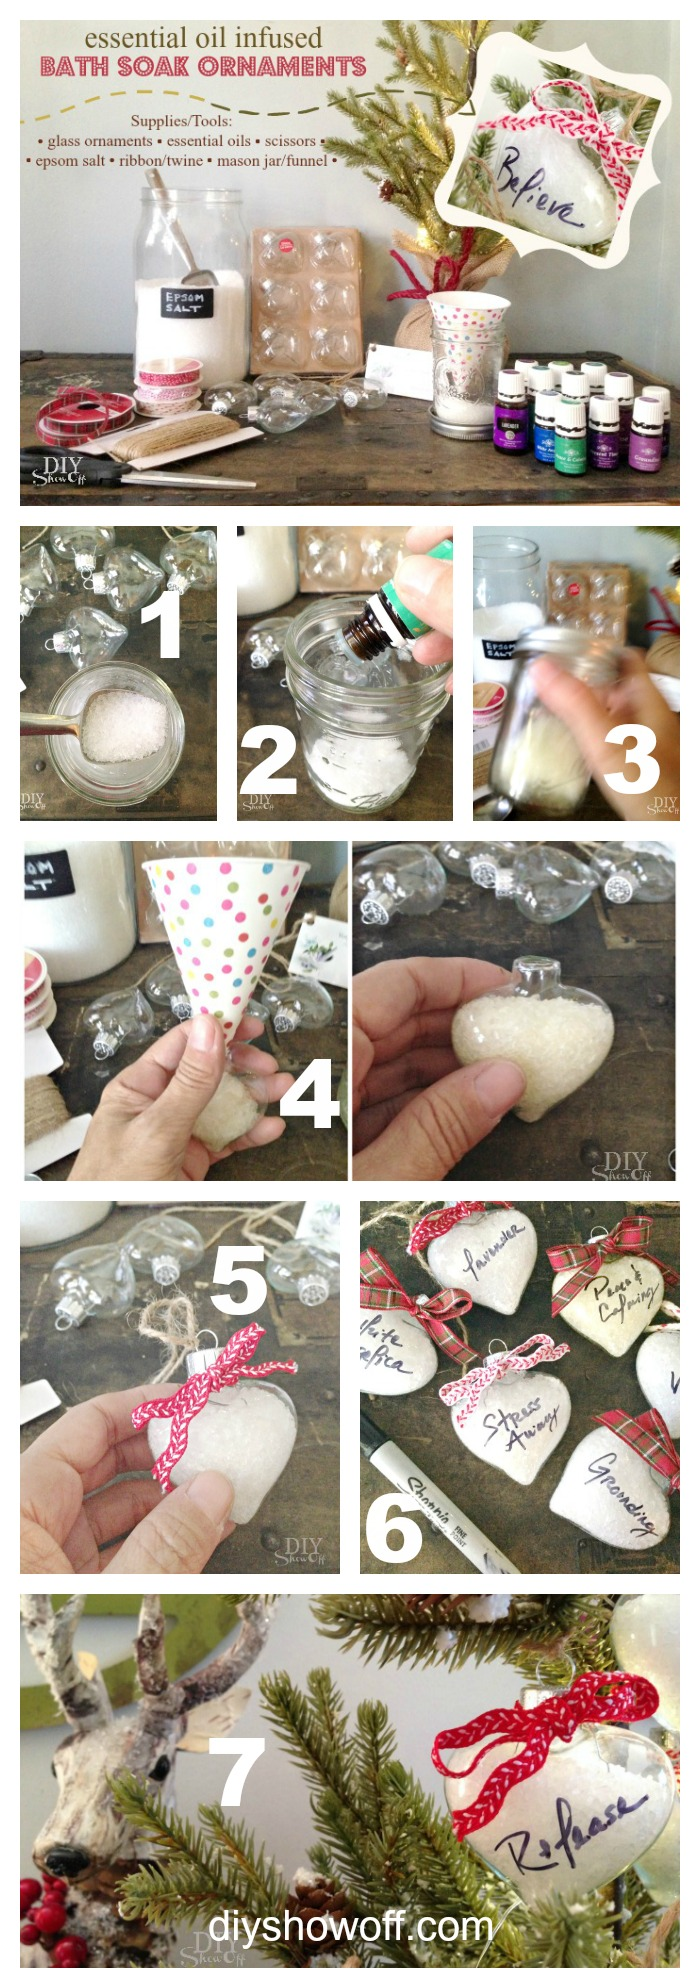 DIY essential oil infused bath soak Christmas ornament gift tutorial @diyshowoff